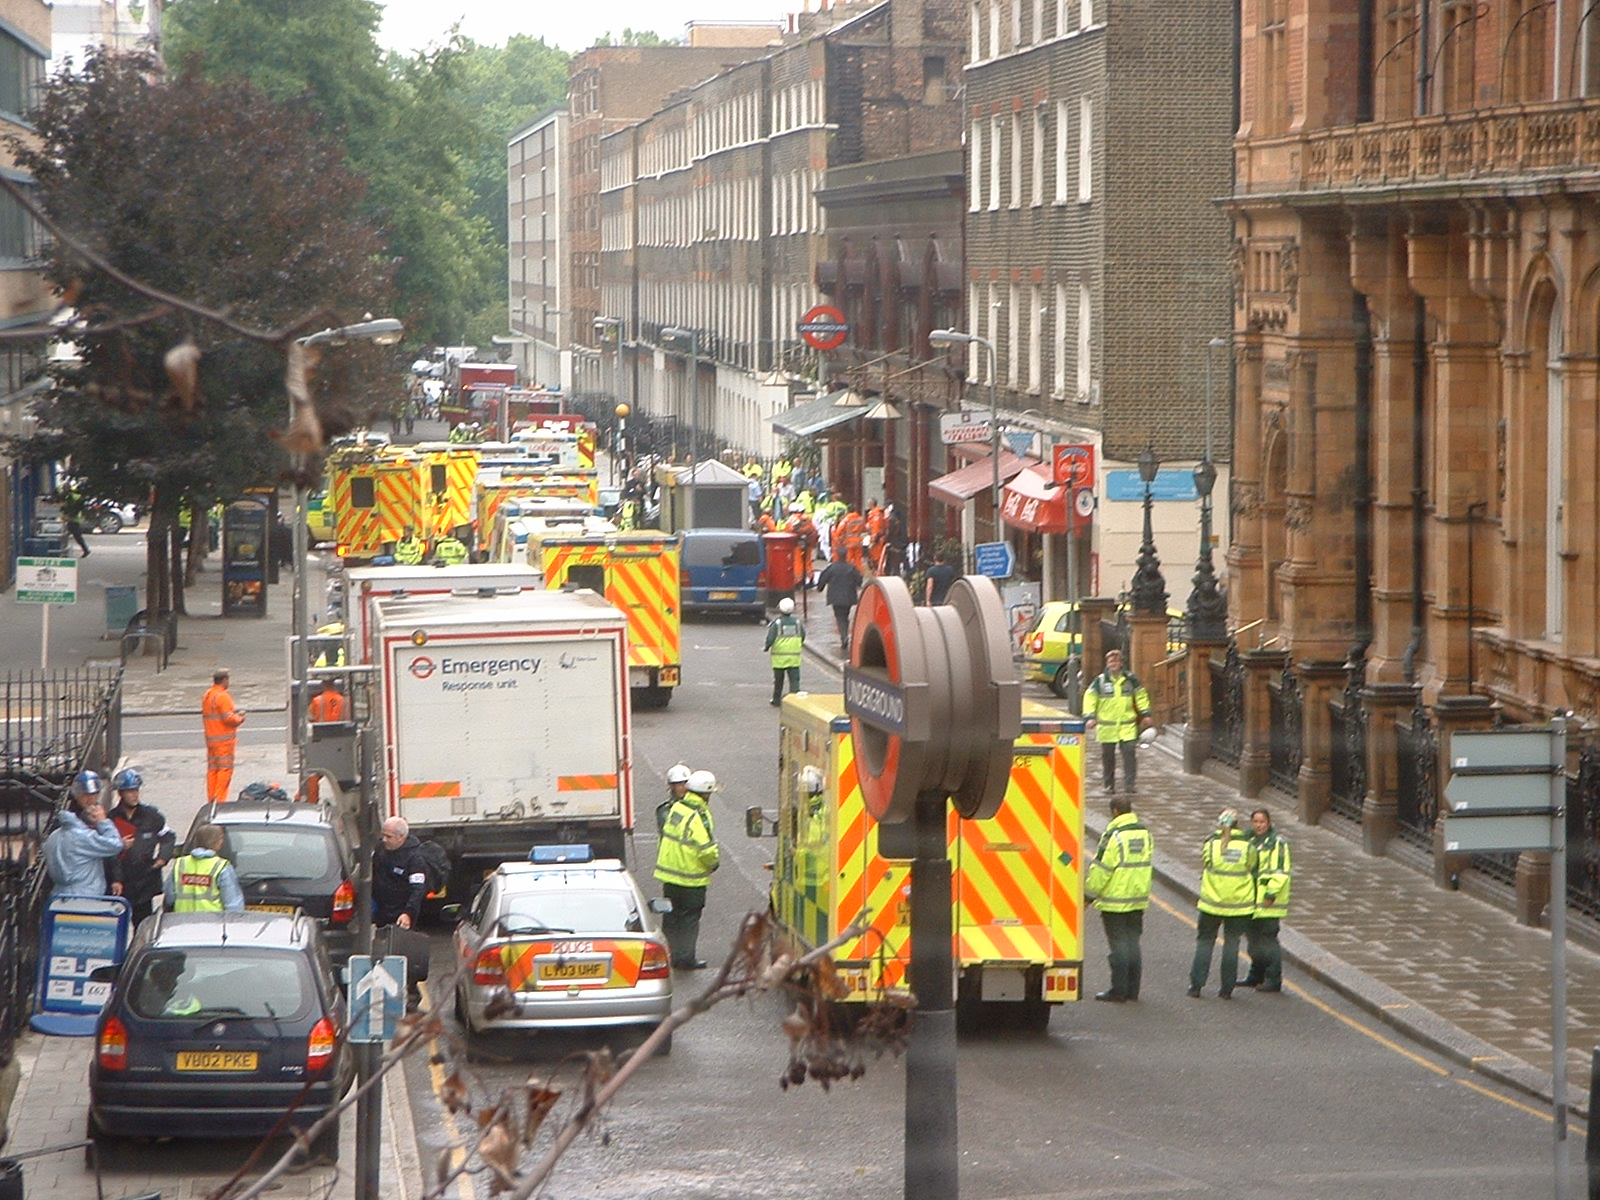 Russell Square, London, in the aftermath of the 7/7 bombings